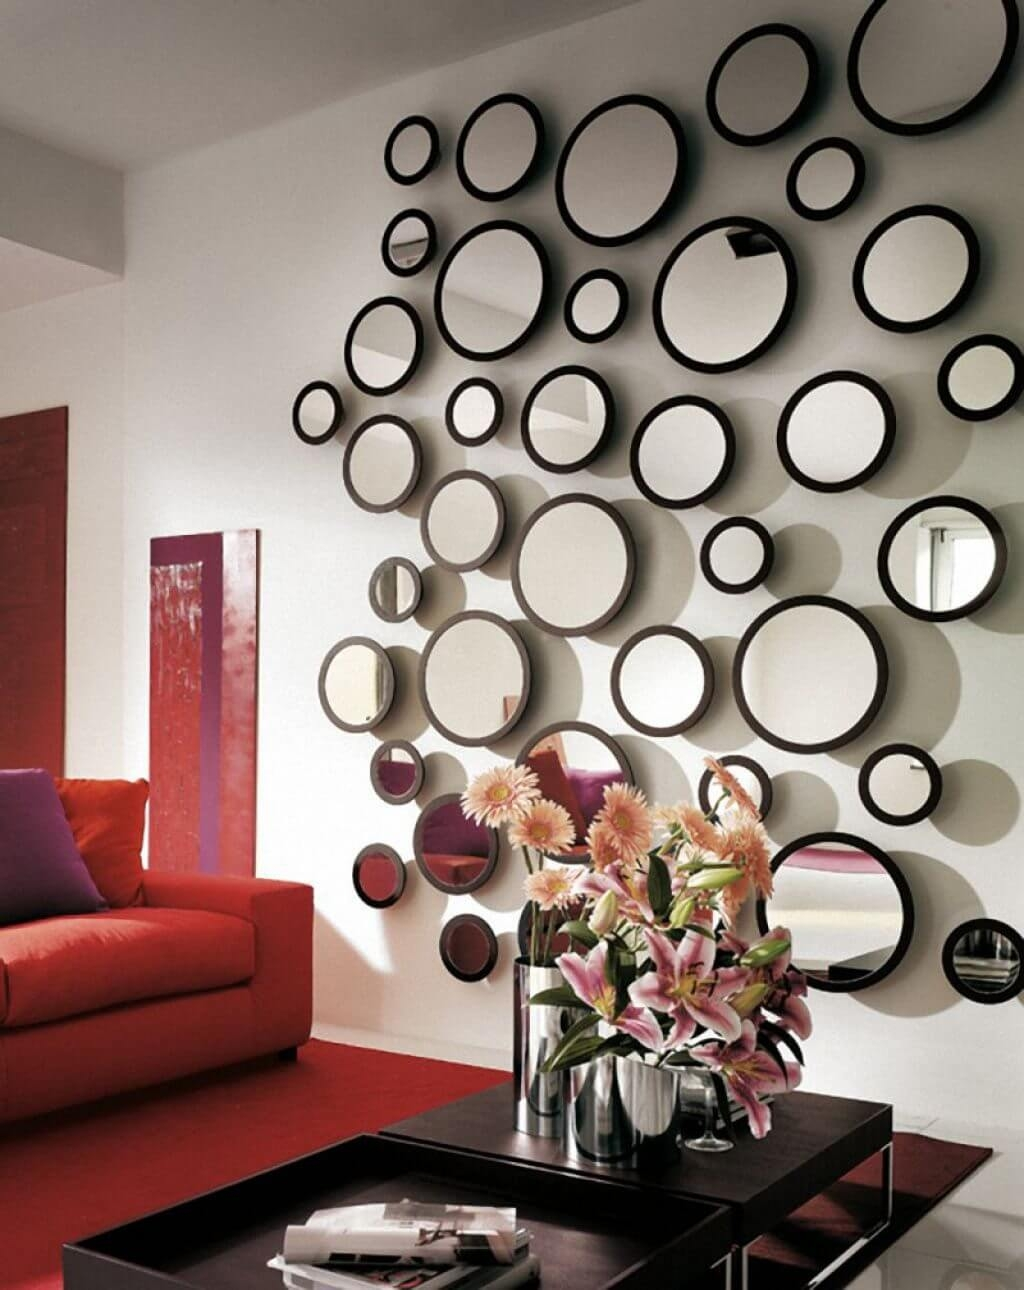 Permalink to Mirrors On Wall Ideas